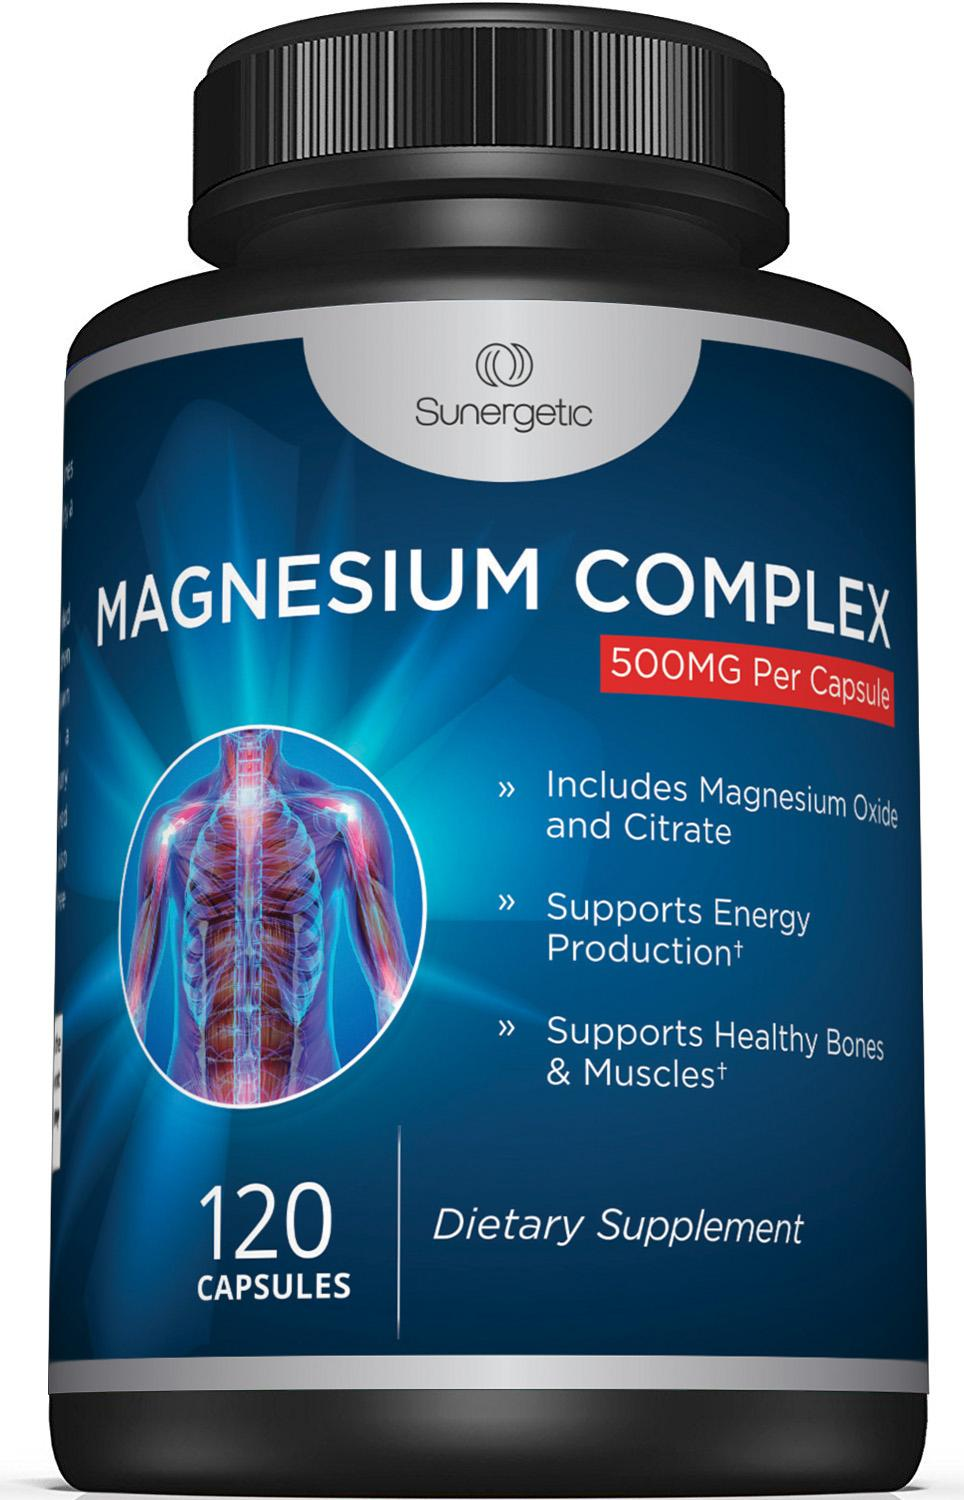 Sunergetic Magnesium Citrate & Oxide Supplement